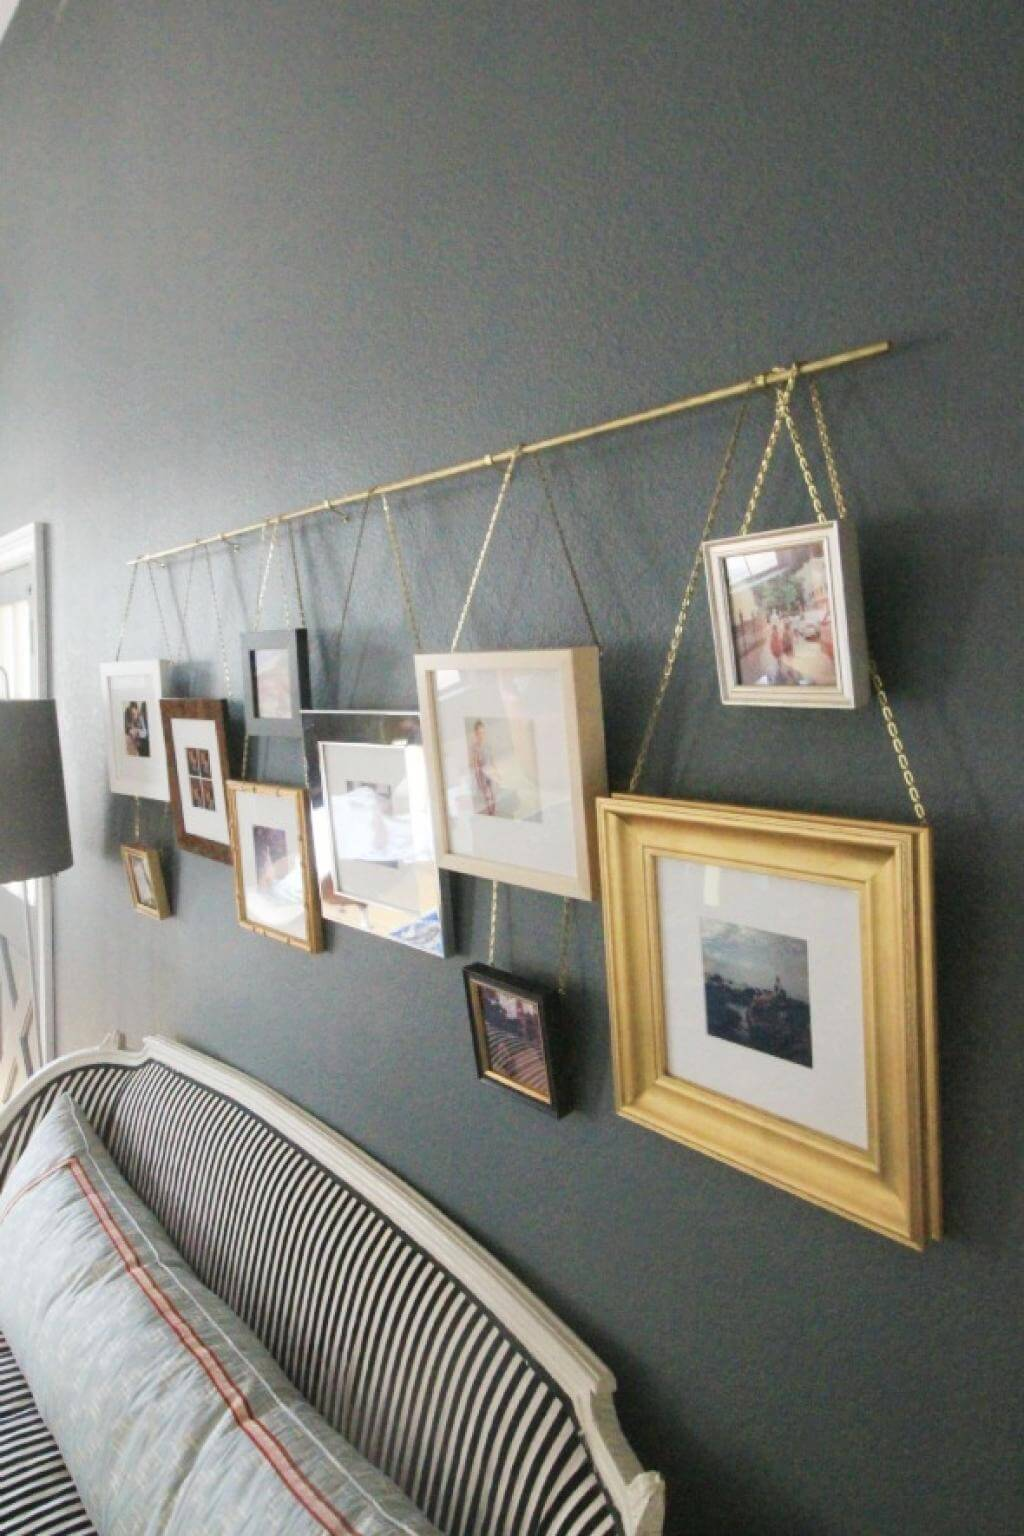 Suspend Multiple Frames at Different Heights